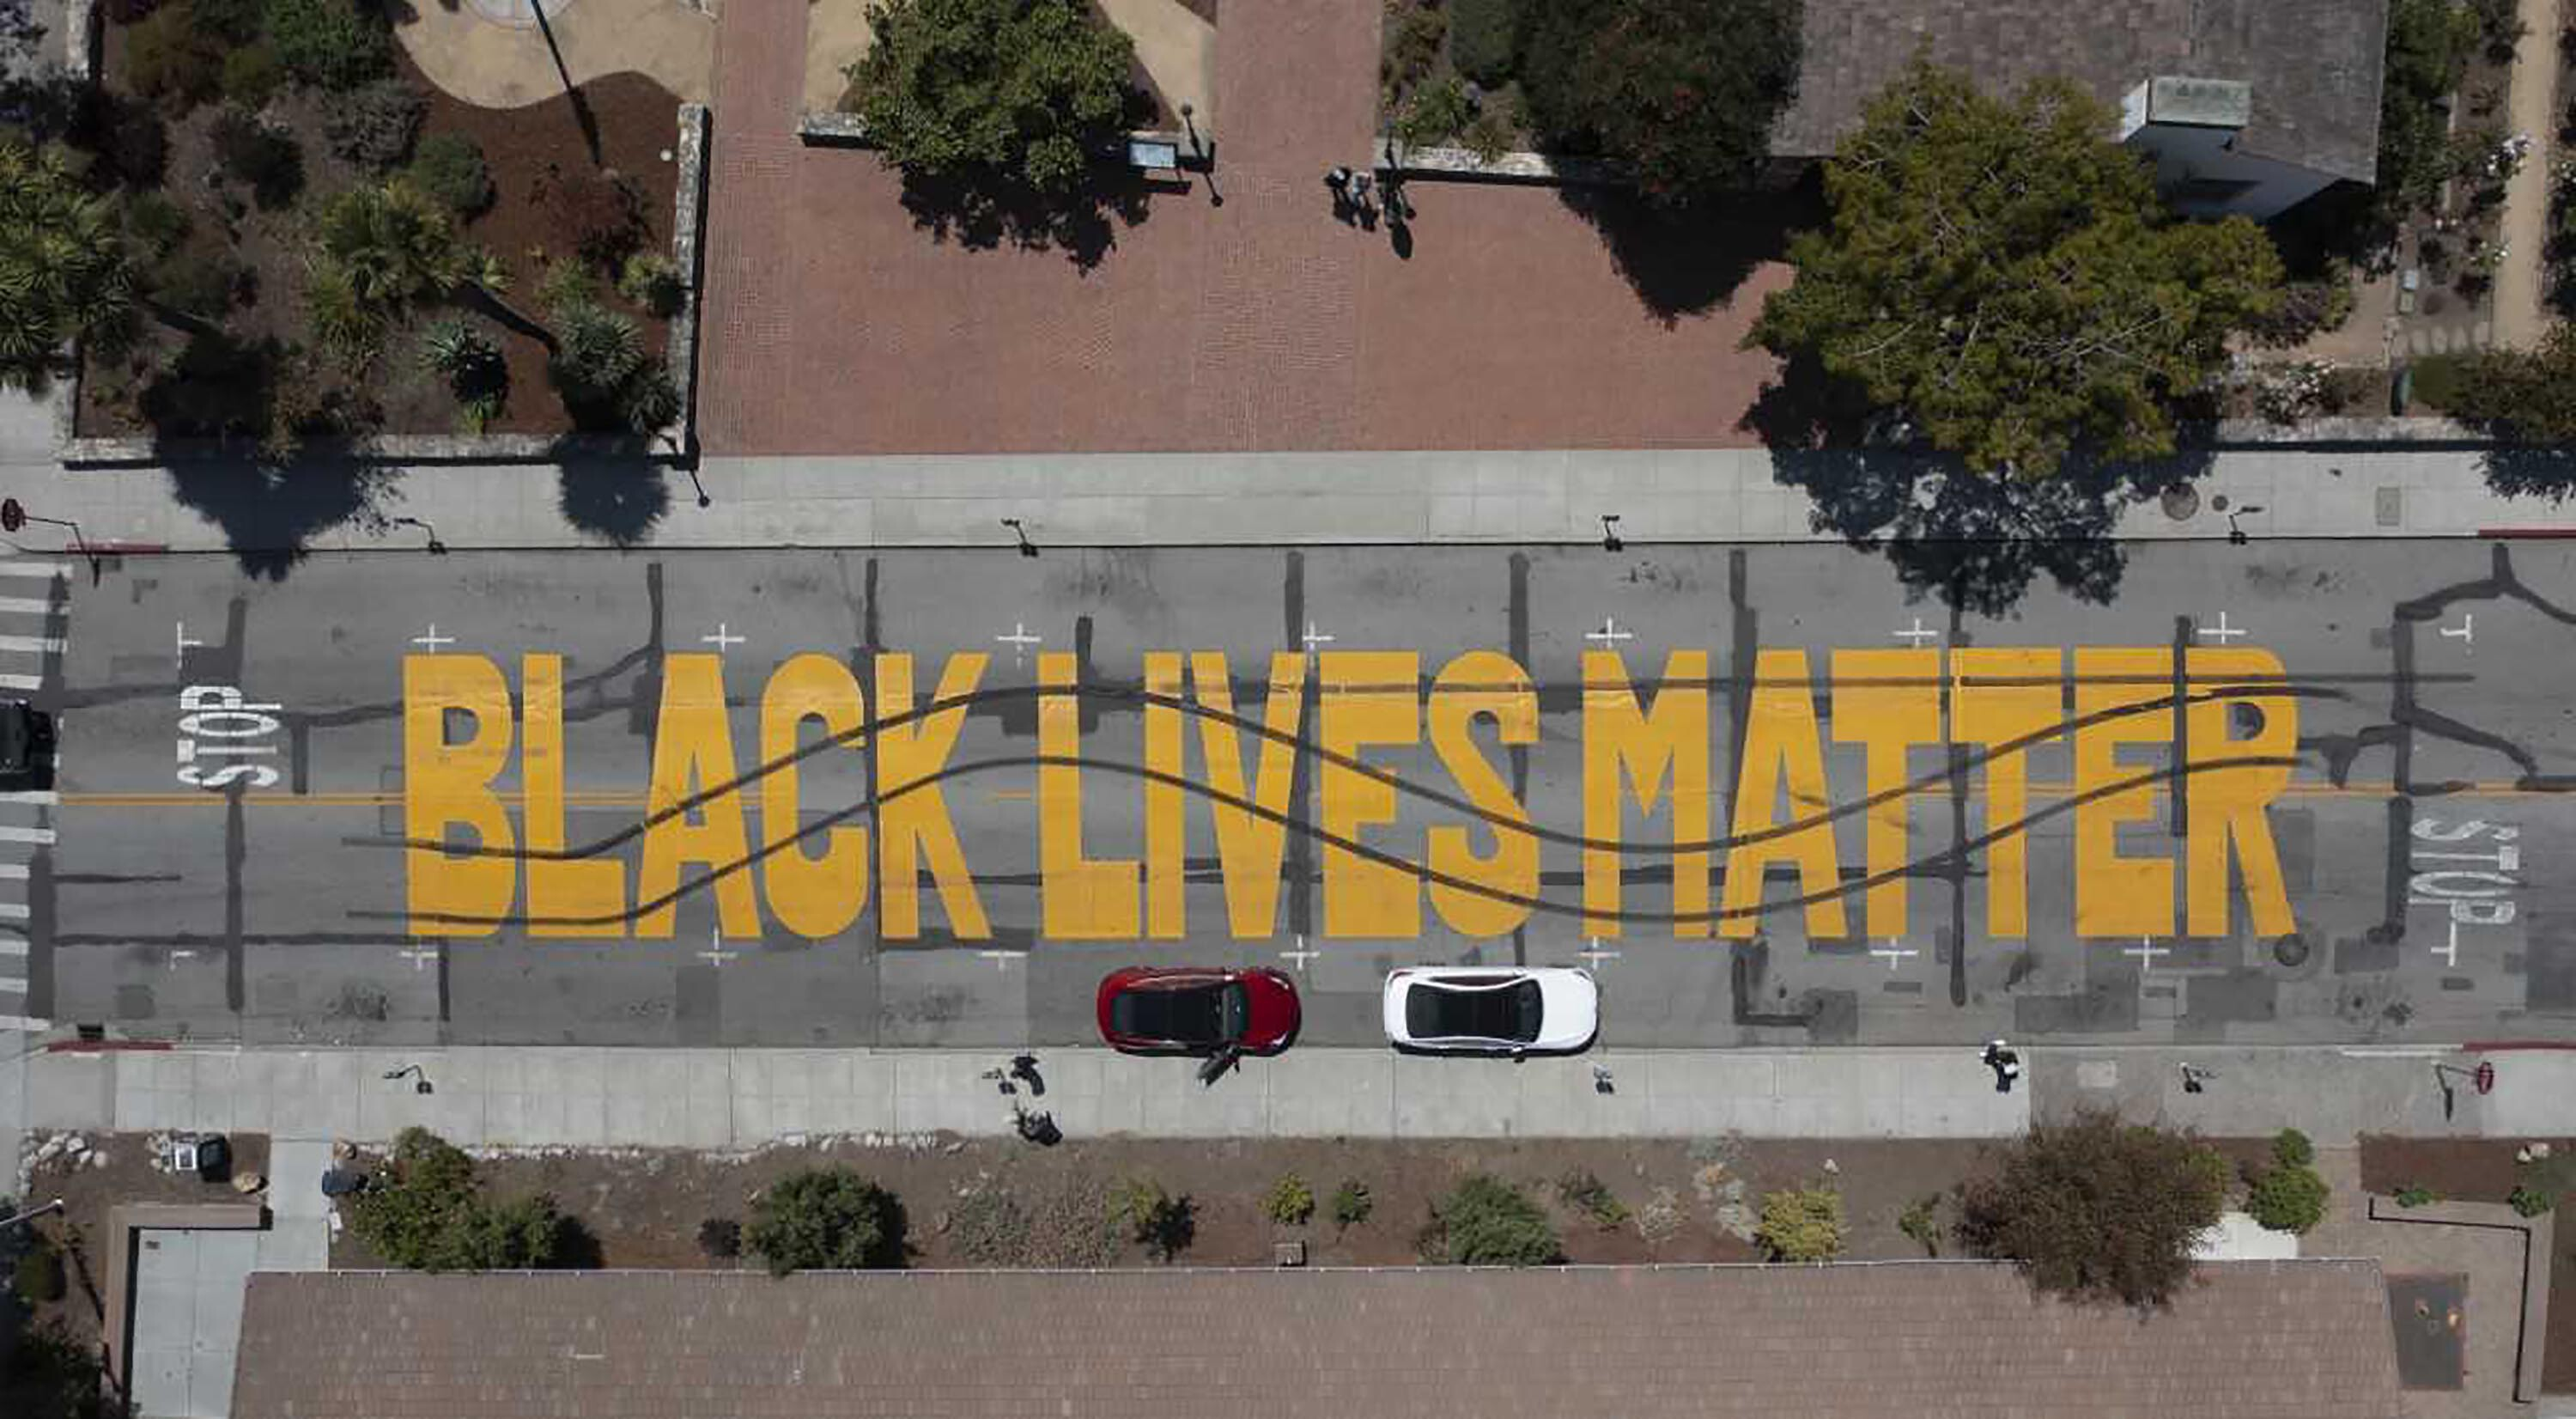 Two men charged for allegedly vandalizing a Black Lives Matter mural in California